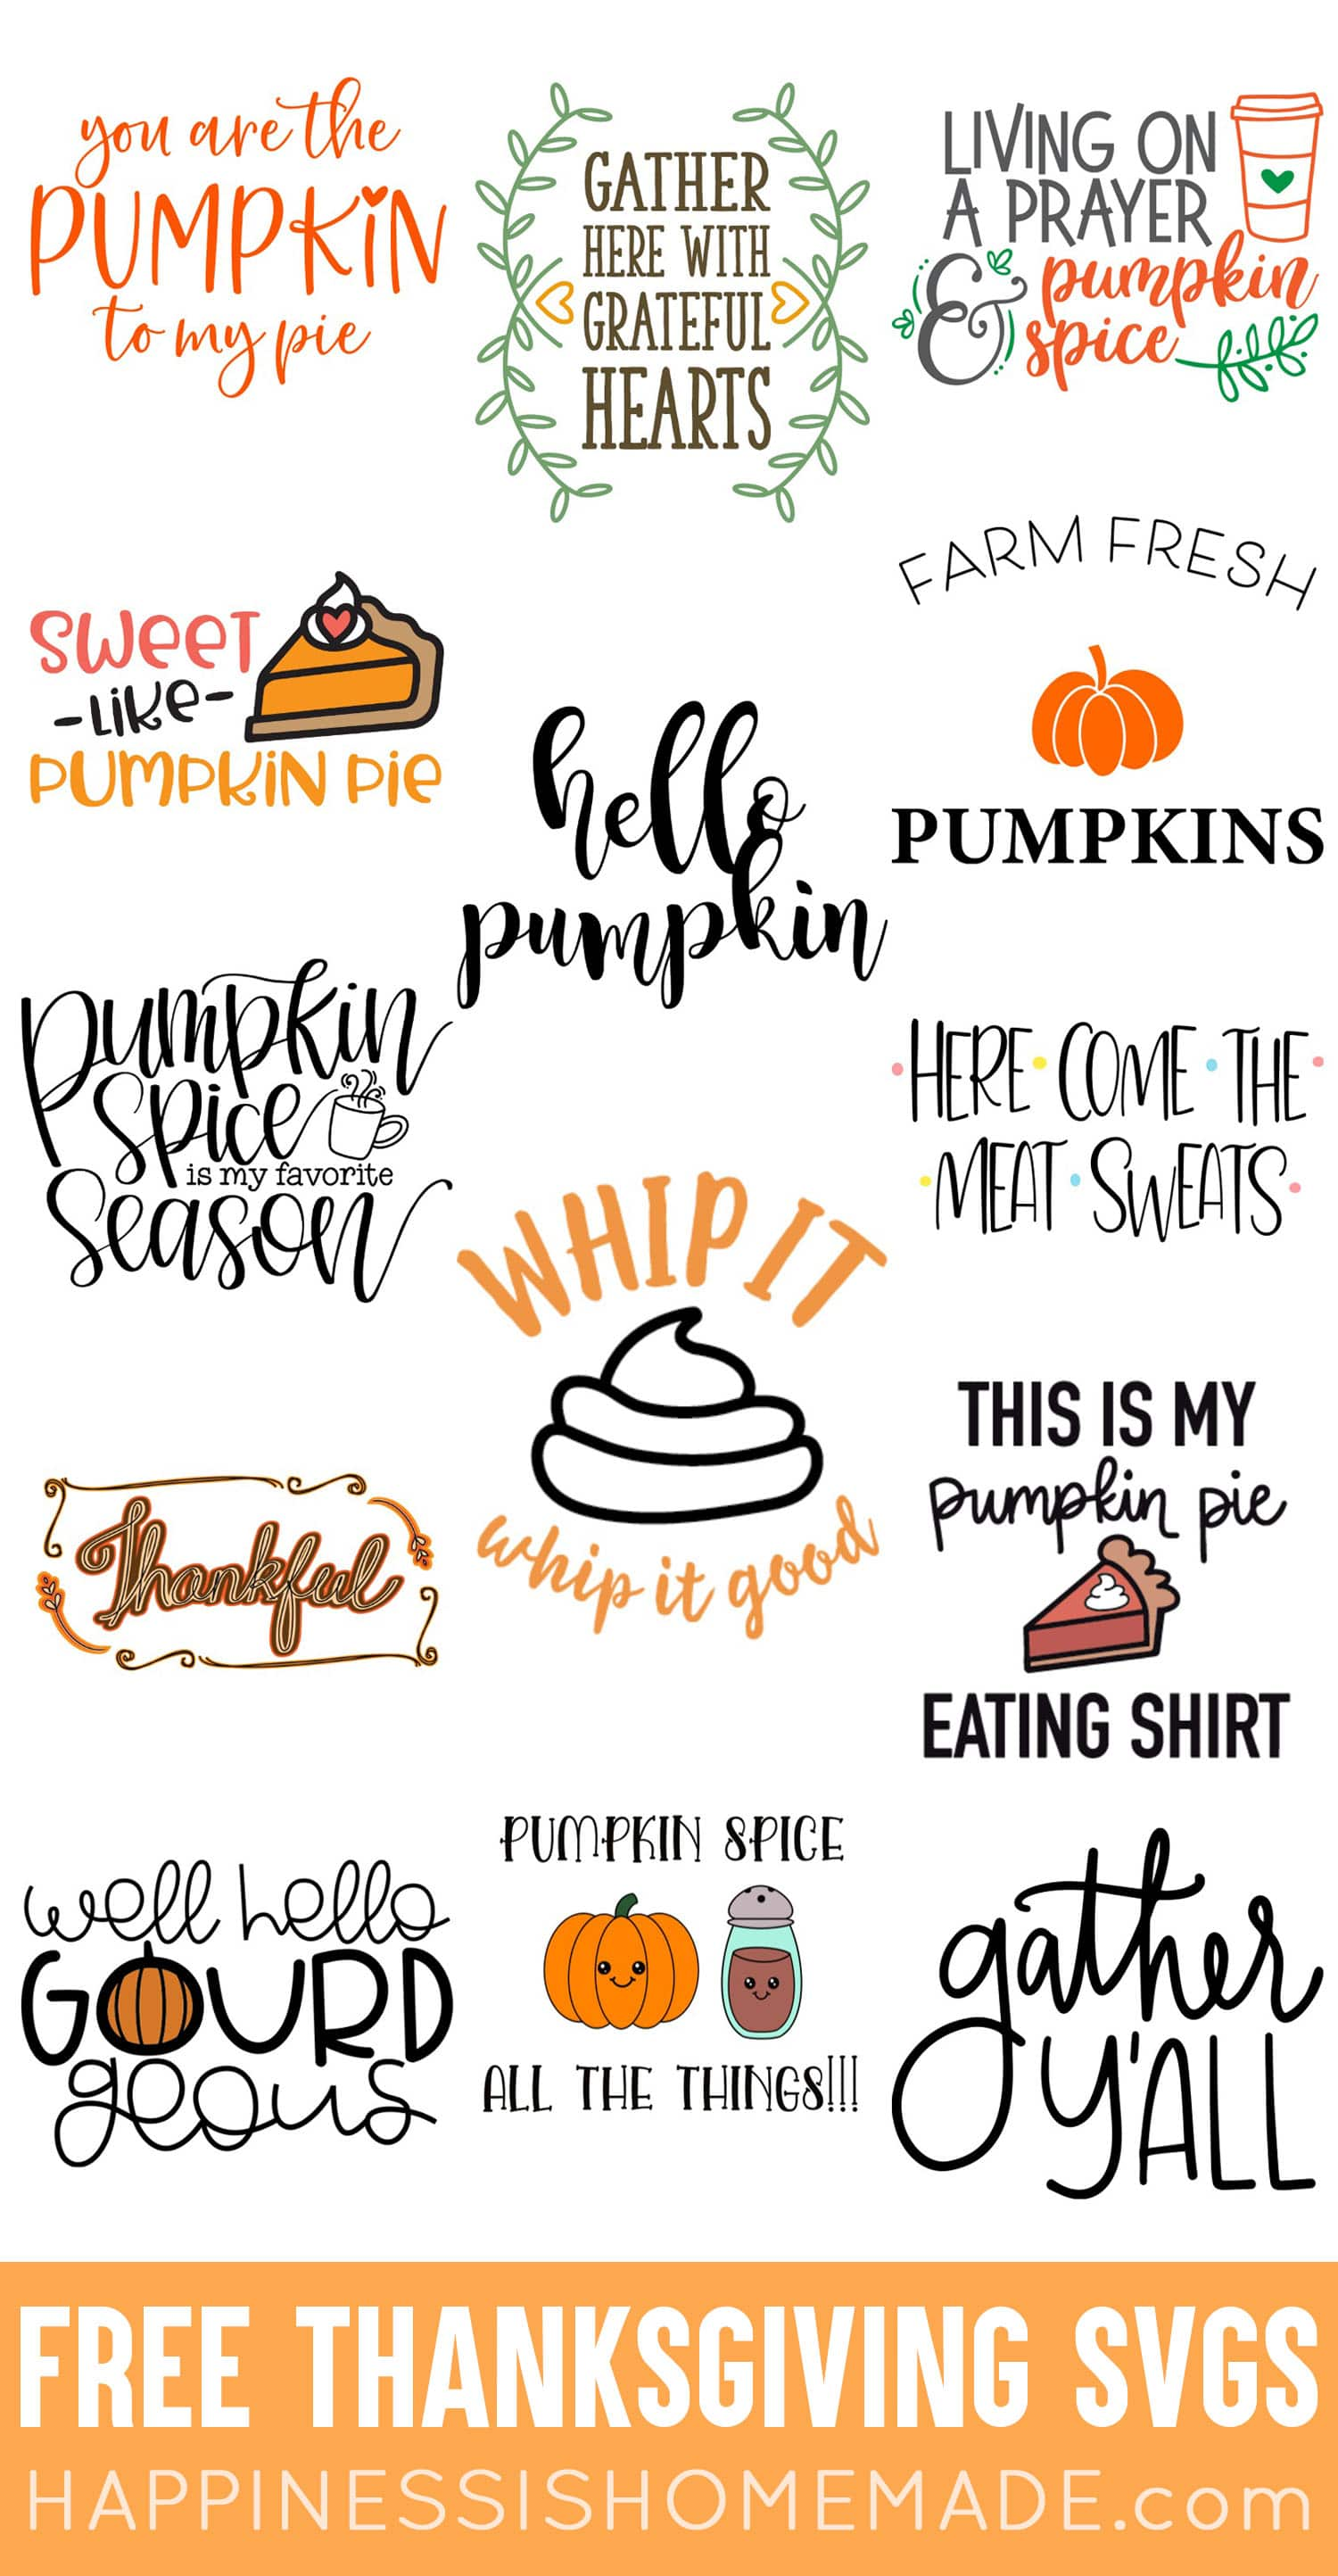 Free Thanksgiving Svg : thanksgiving, Thanksgiving, Files, Happiness, Homemade